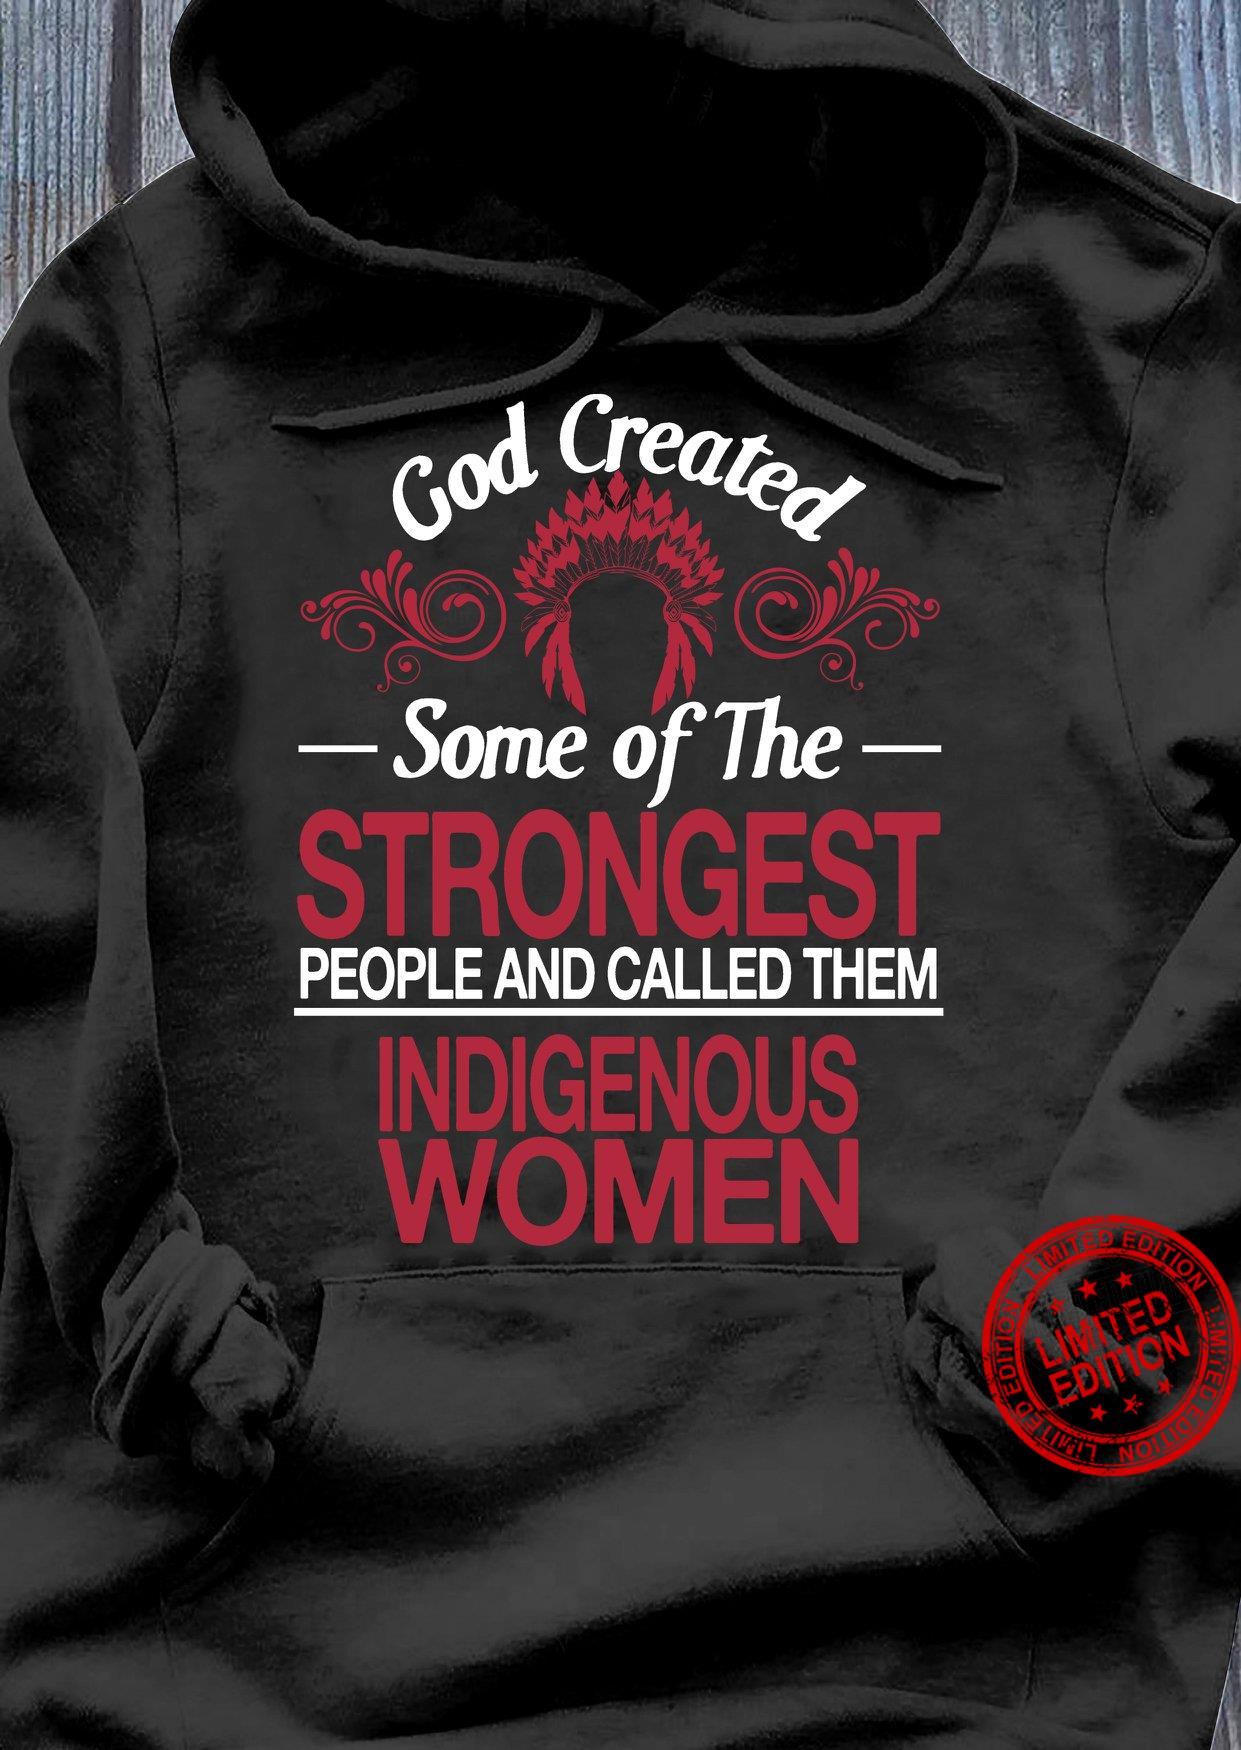 Gdo Created Some Of The Strongest People And Called Them Indigenous Women Shirt